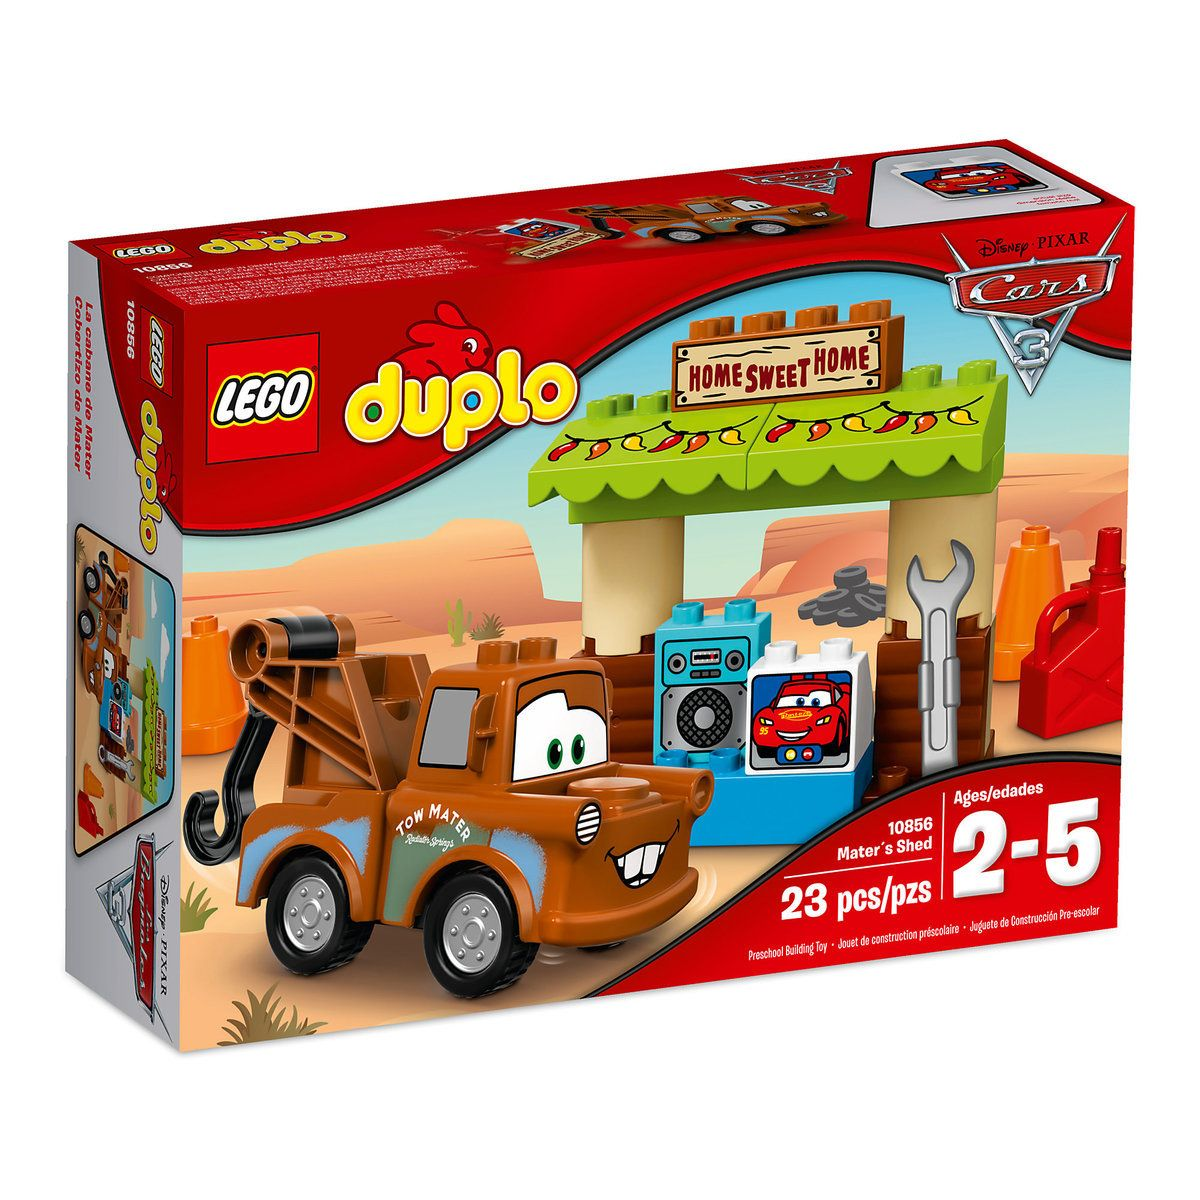 Mater S Shed Lego Duplo Playset Cars 3 B A B I E S Lego